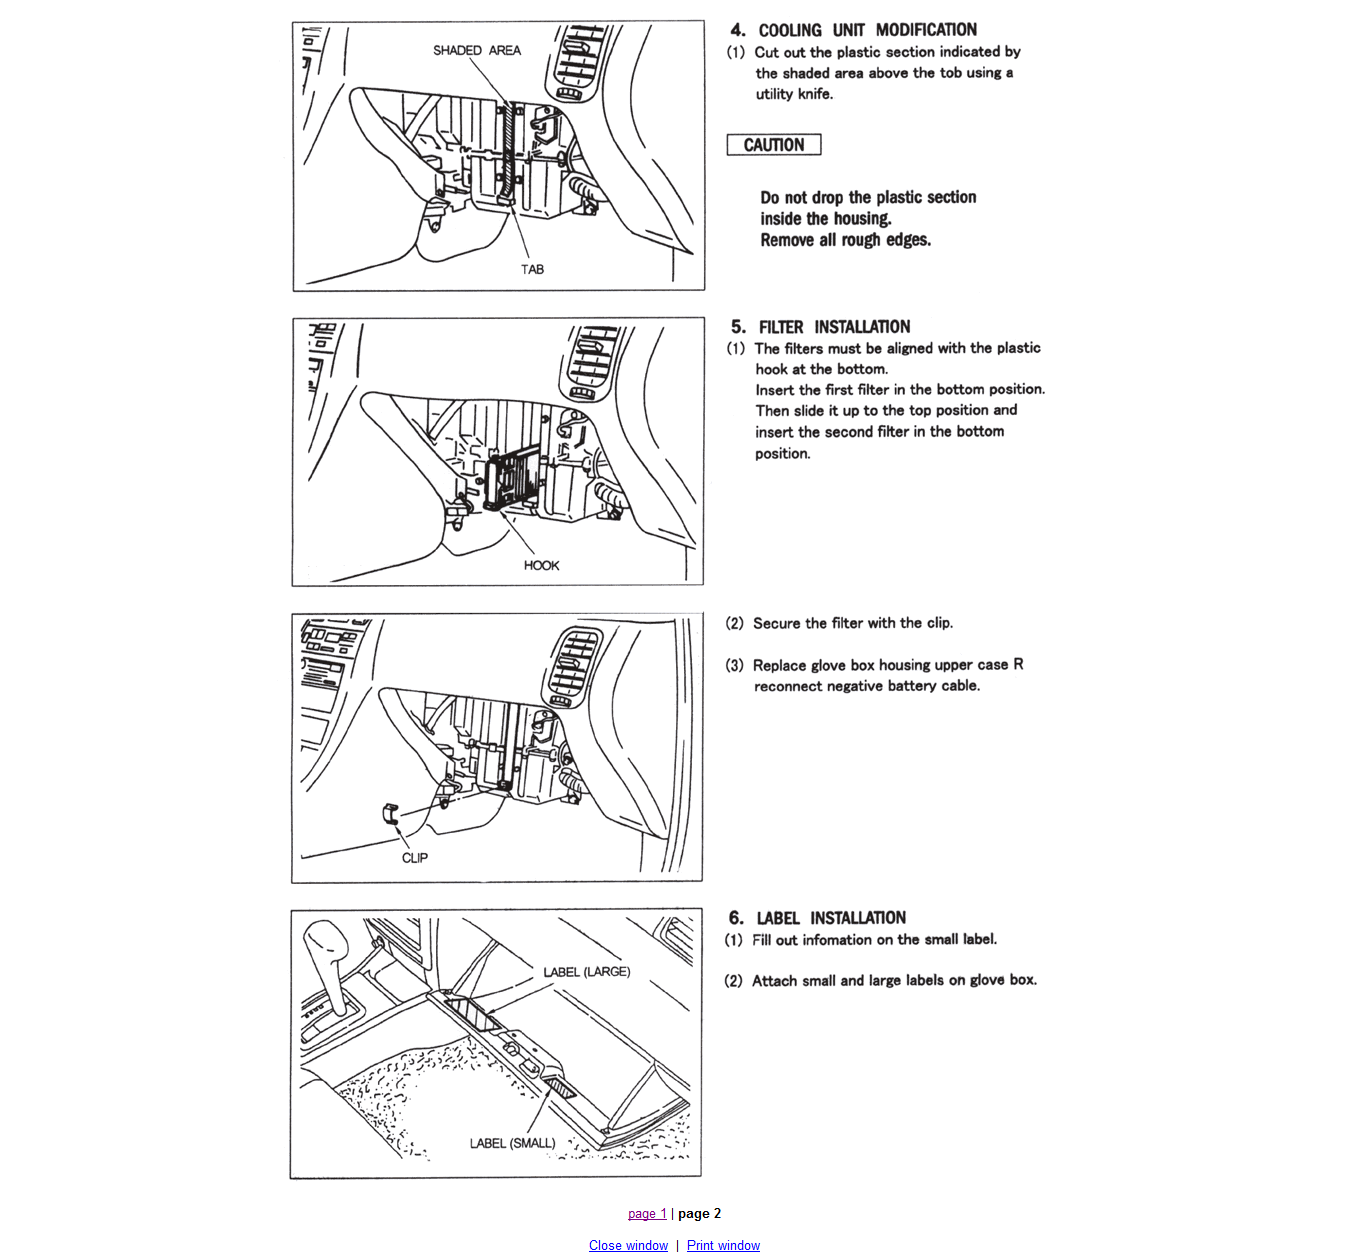 2009 nissan sentra cabin air filter diagram